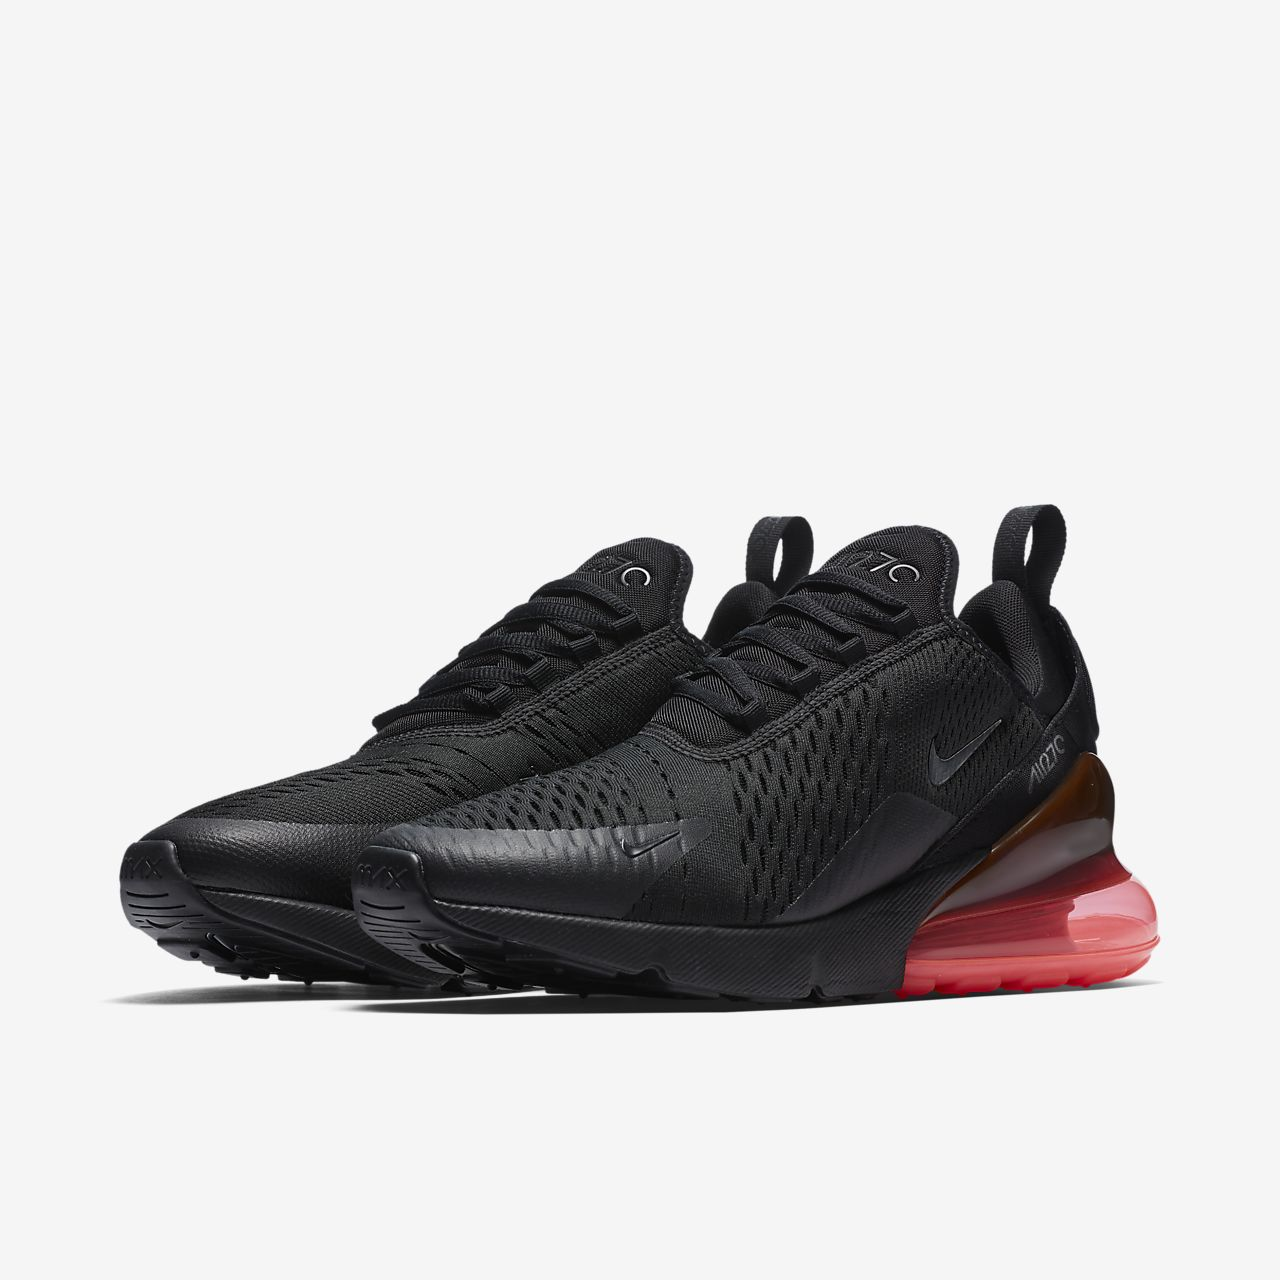 6bf7ac5fc2 nike air max 270 mens shoe; nike air max 270 mens shoe; advanced design  wmns nike air max 270 navy blue red white 849559 460 mens running shoes